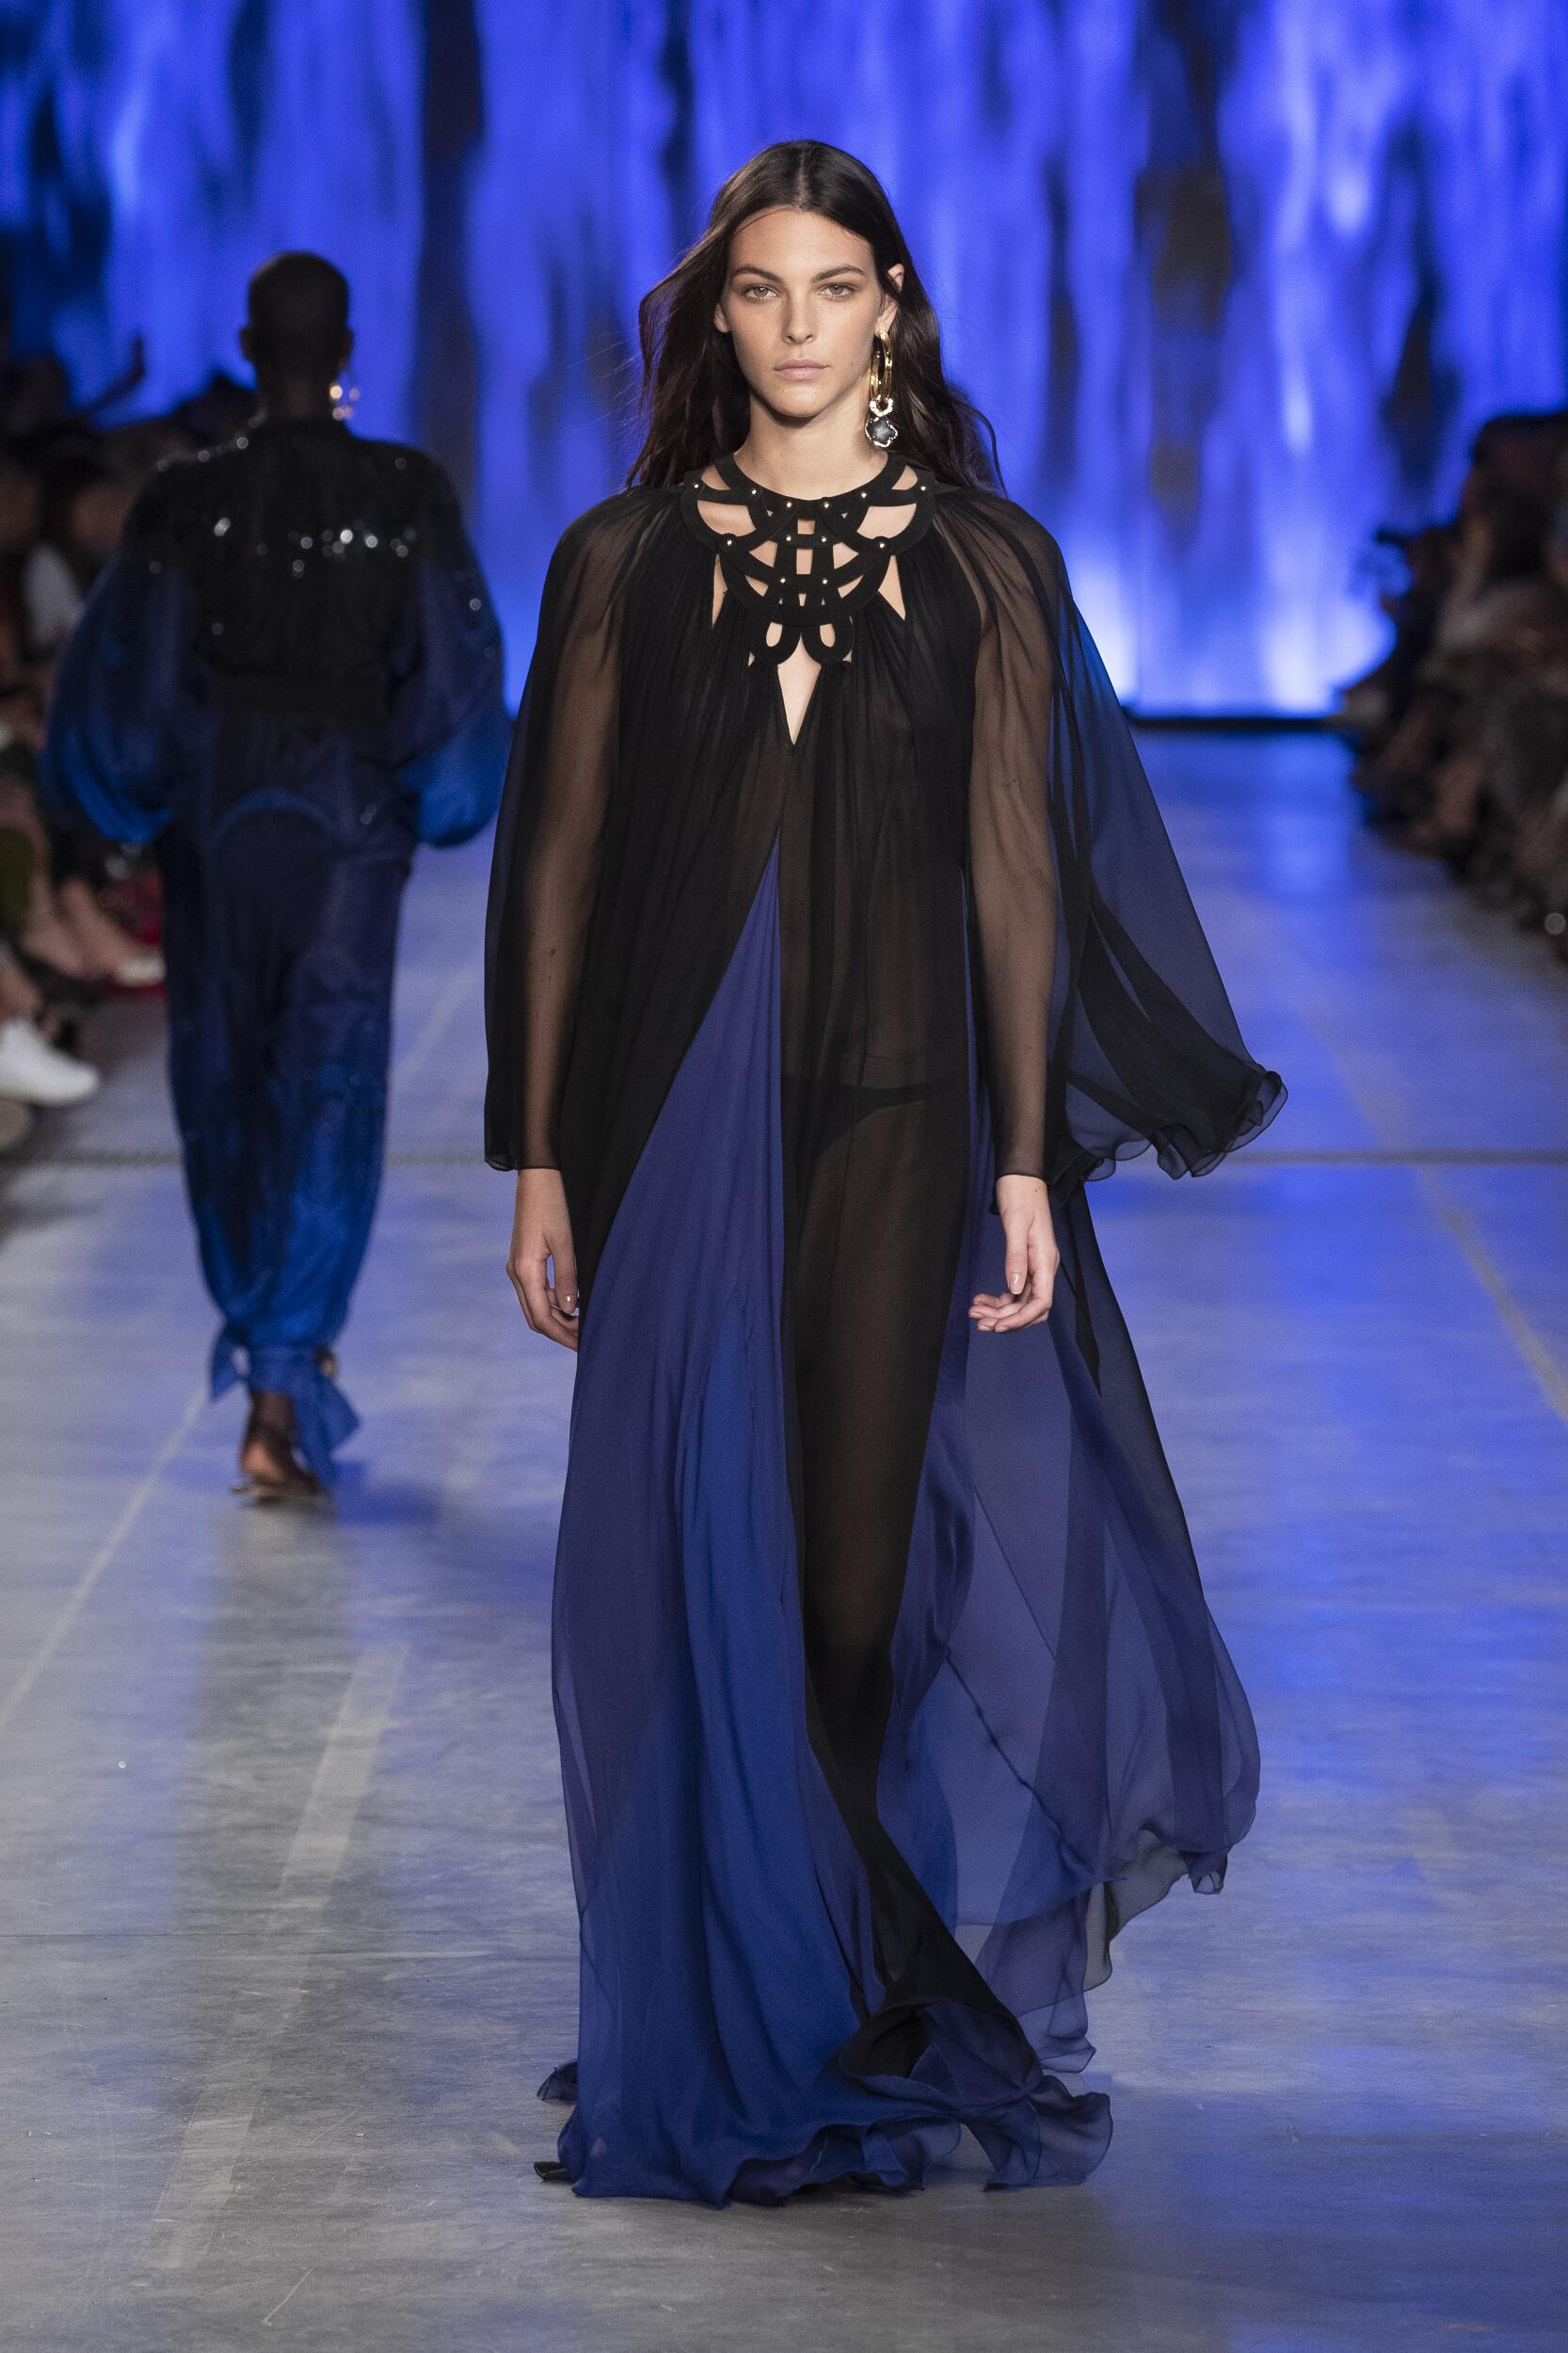 Alberta Ferretti Womenswear Collection Trends